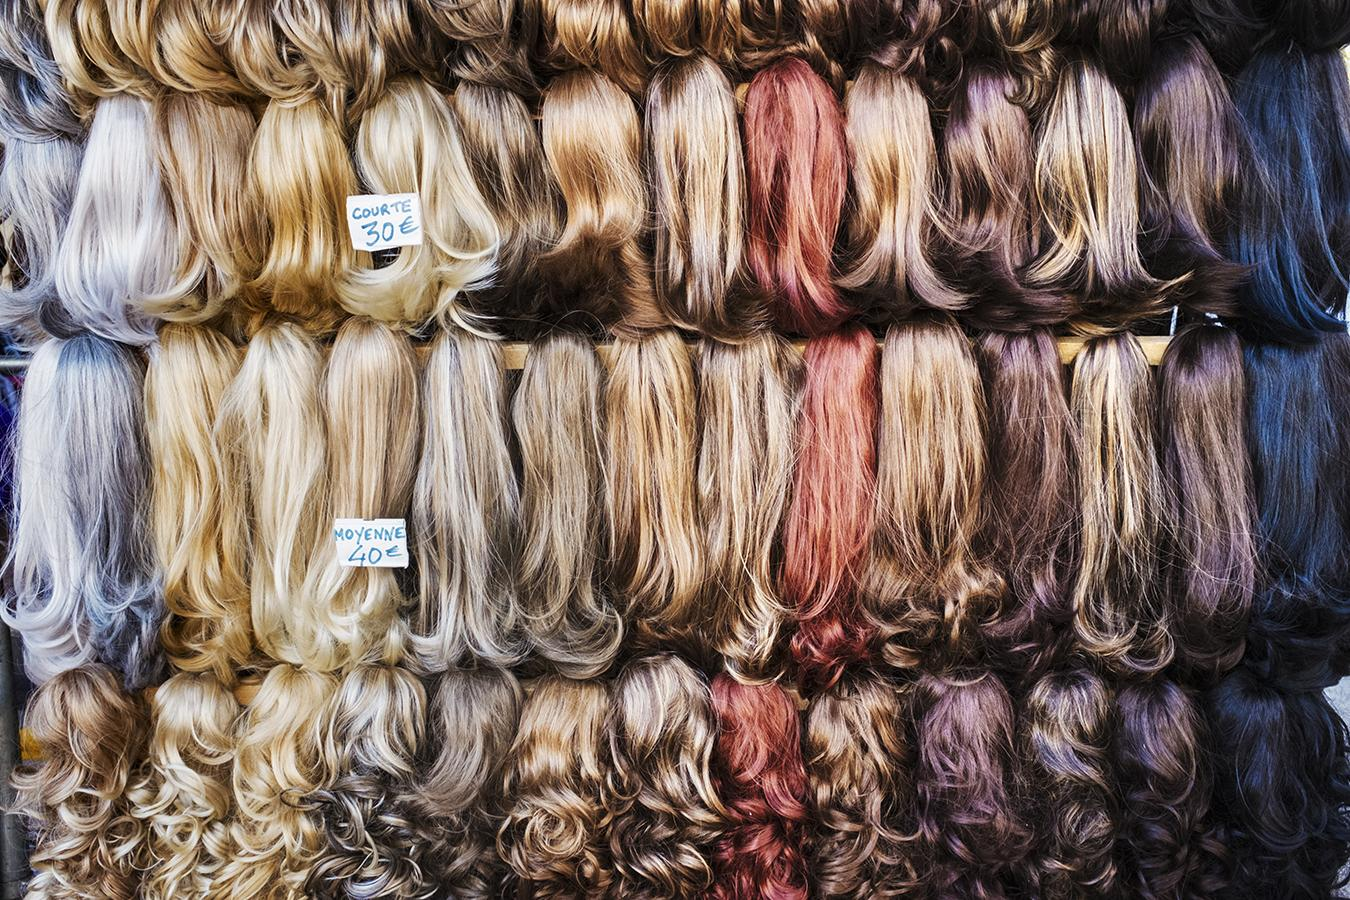 Clip-in Hair Extensions 101: How to Find and Pick the Best One For You